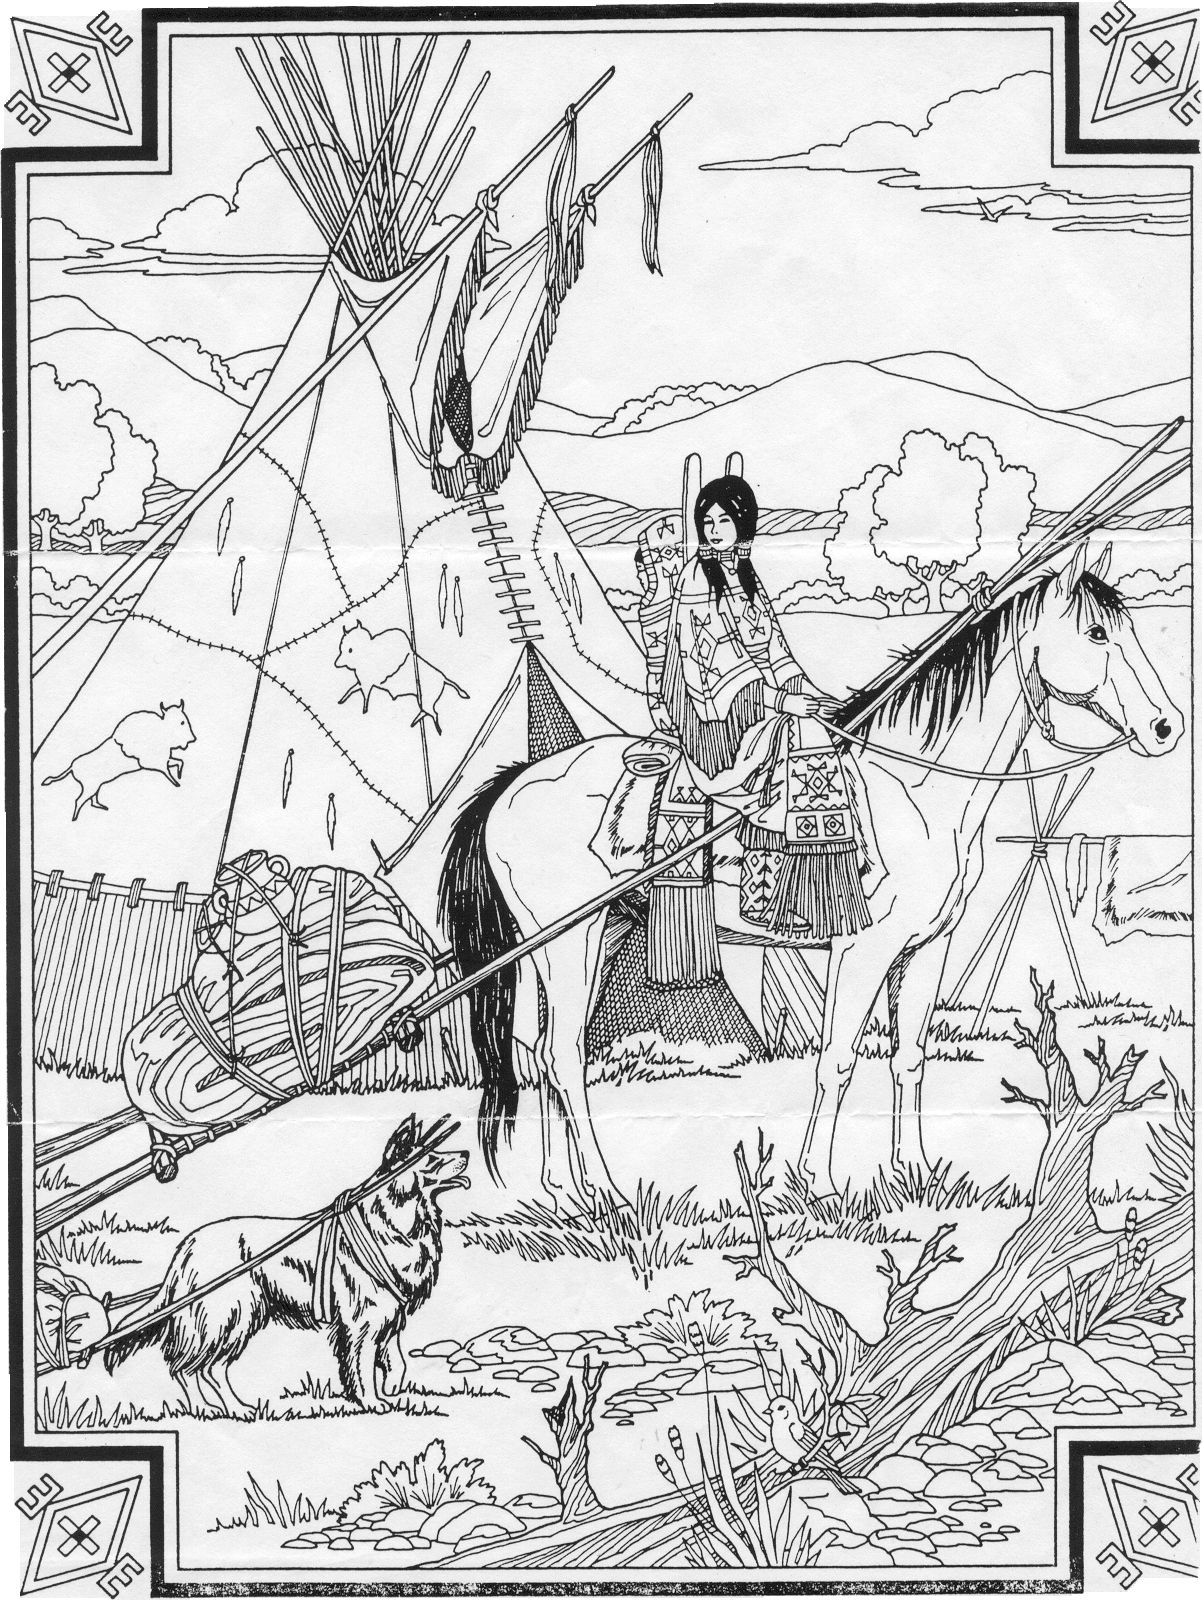 free native american indian coloring pages native american designs coloring pages printables american coloring indian native pages free